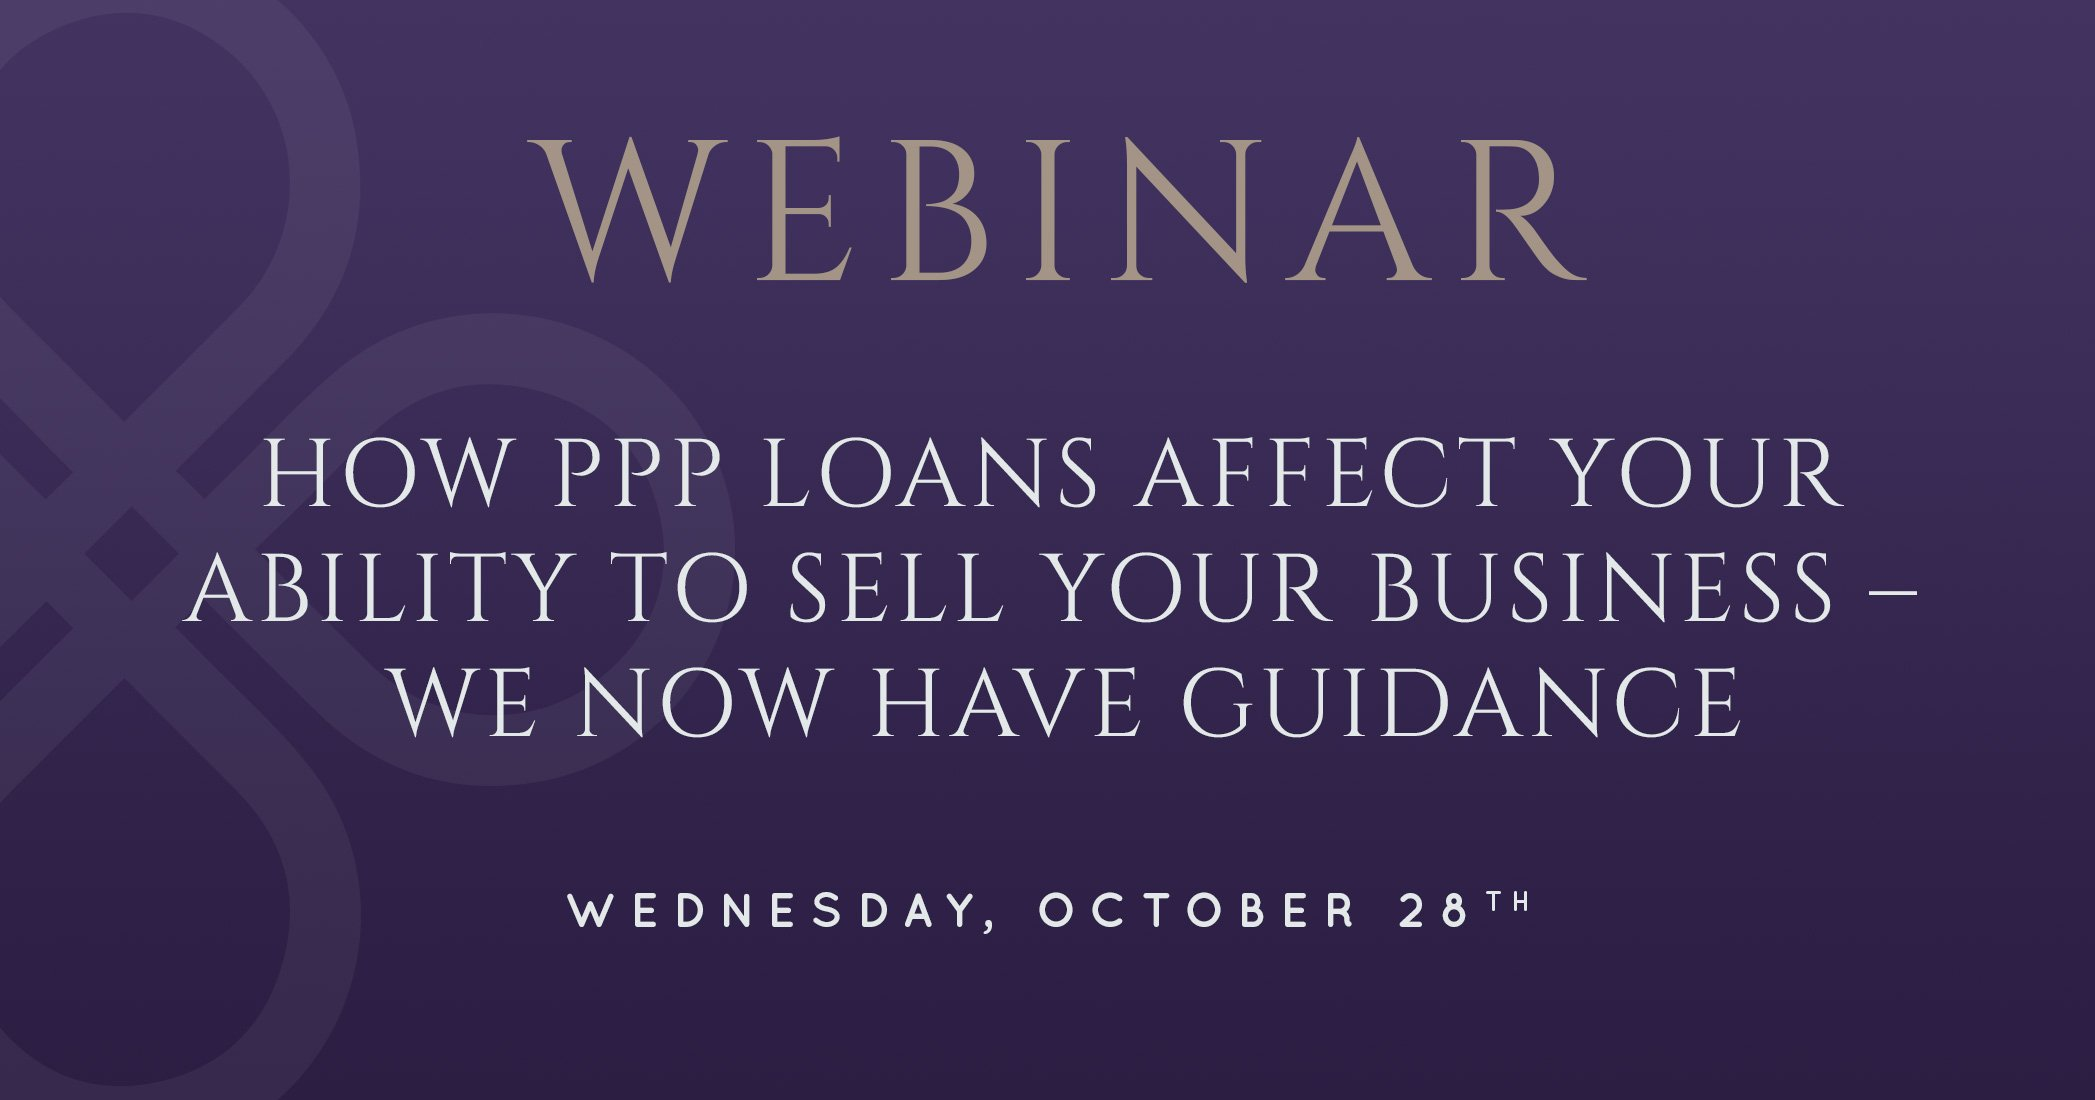 How PPP Loans Affect Your Ability To Sell Your Business – We Now Have Guidance